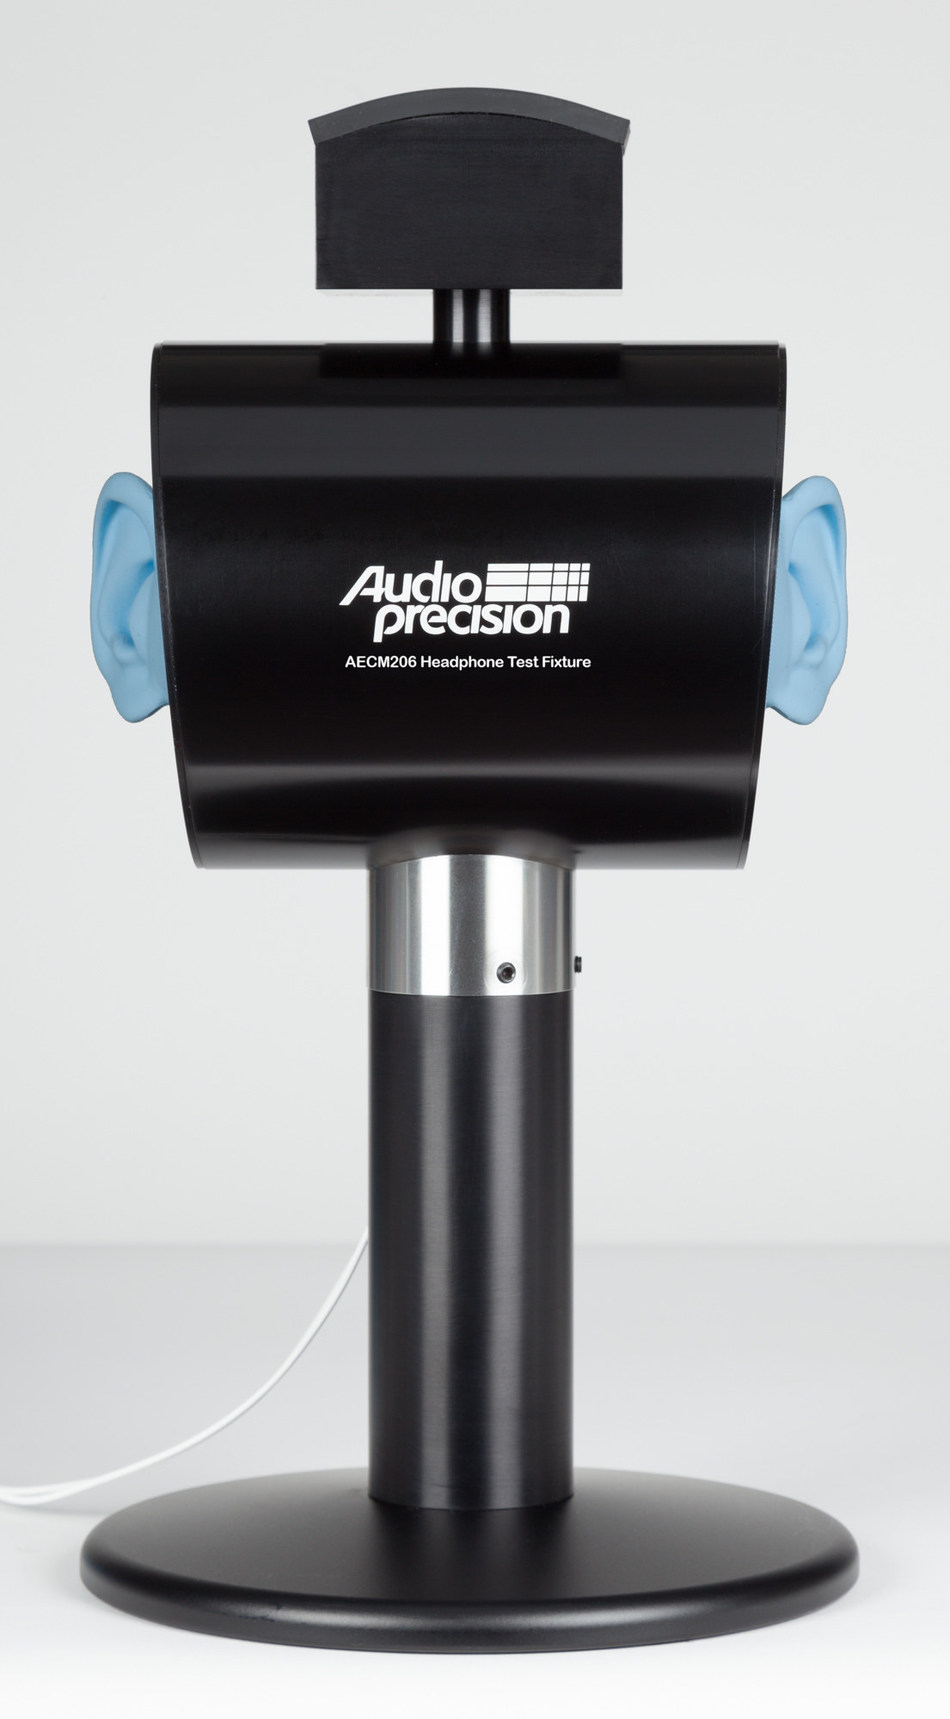 The Audio Precision AECM206 Headphone Test Fixture supports the testing of circum-aural, supra-aural and intra-concha headphones and earbuds in R&D and production test applications.